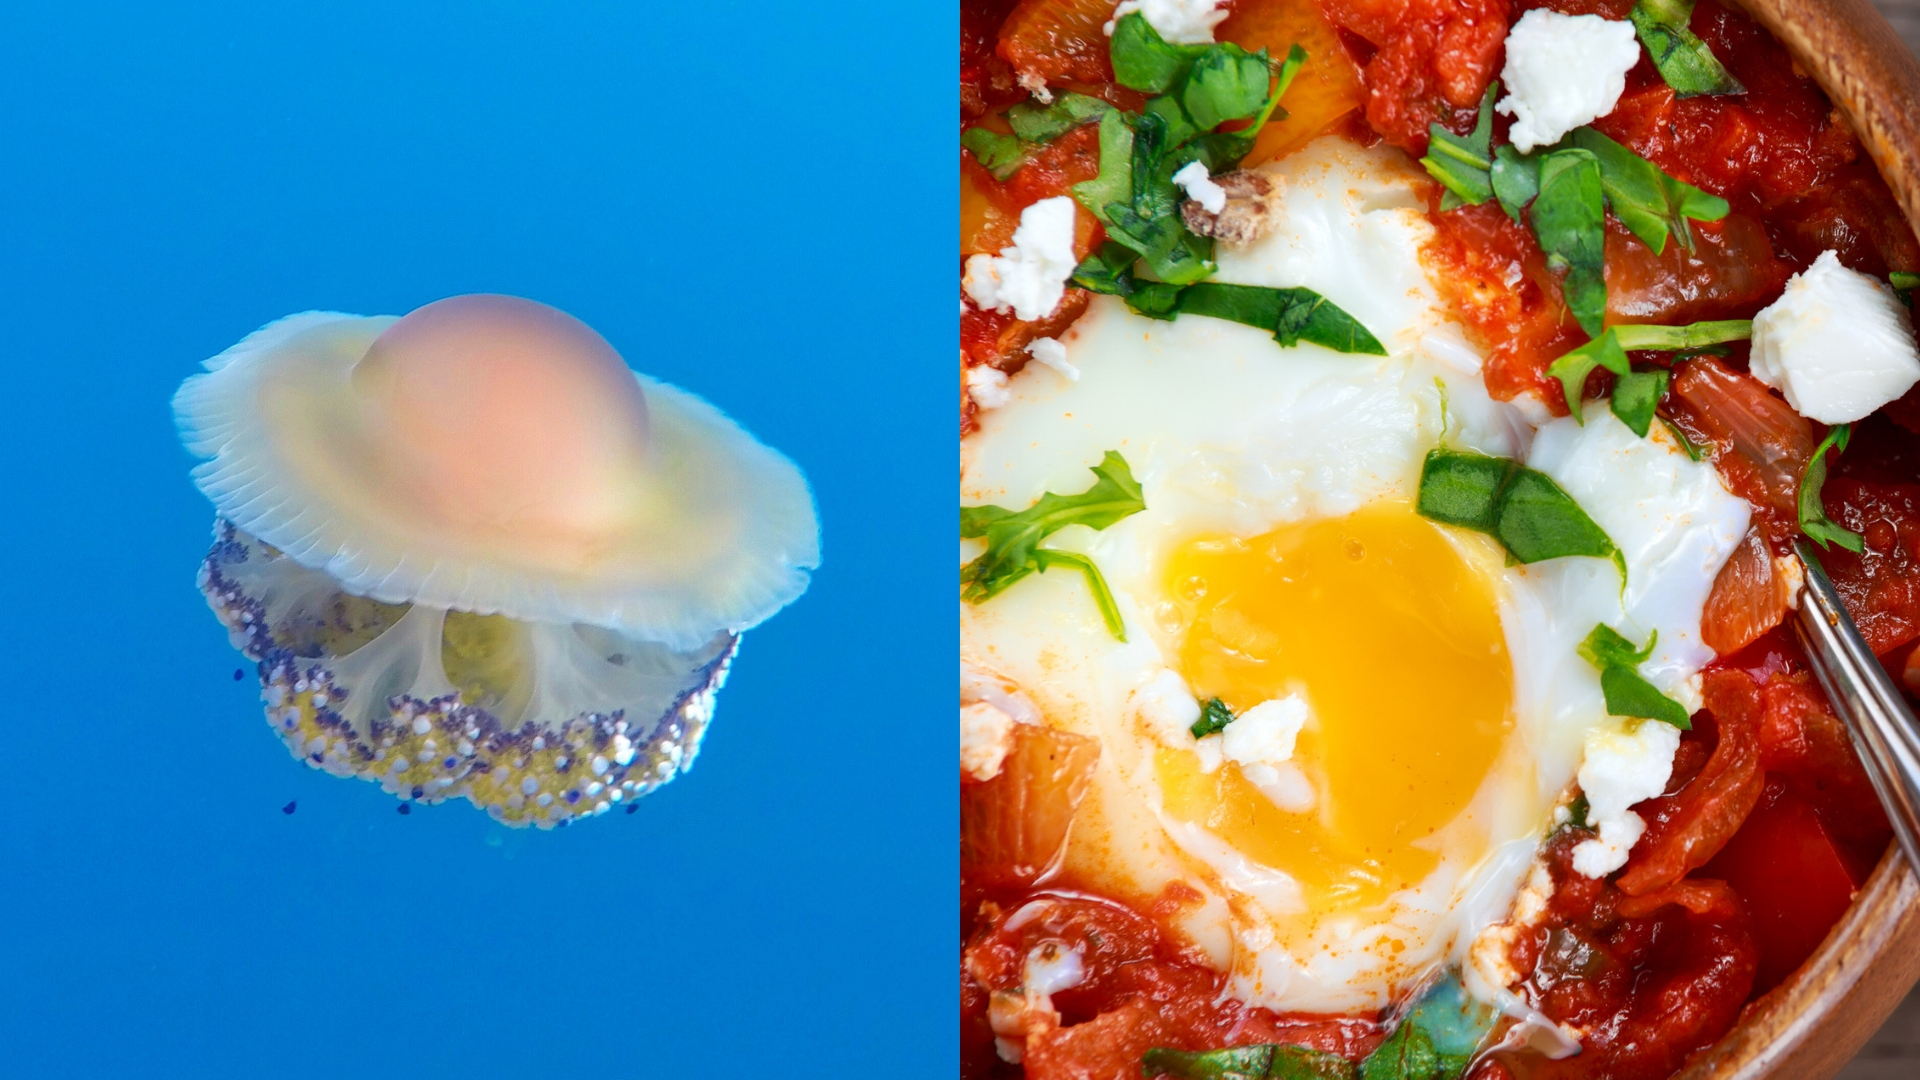 a fried egg jellyfish next to a sunny side up egg in tomato sauce